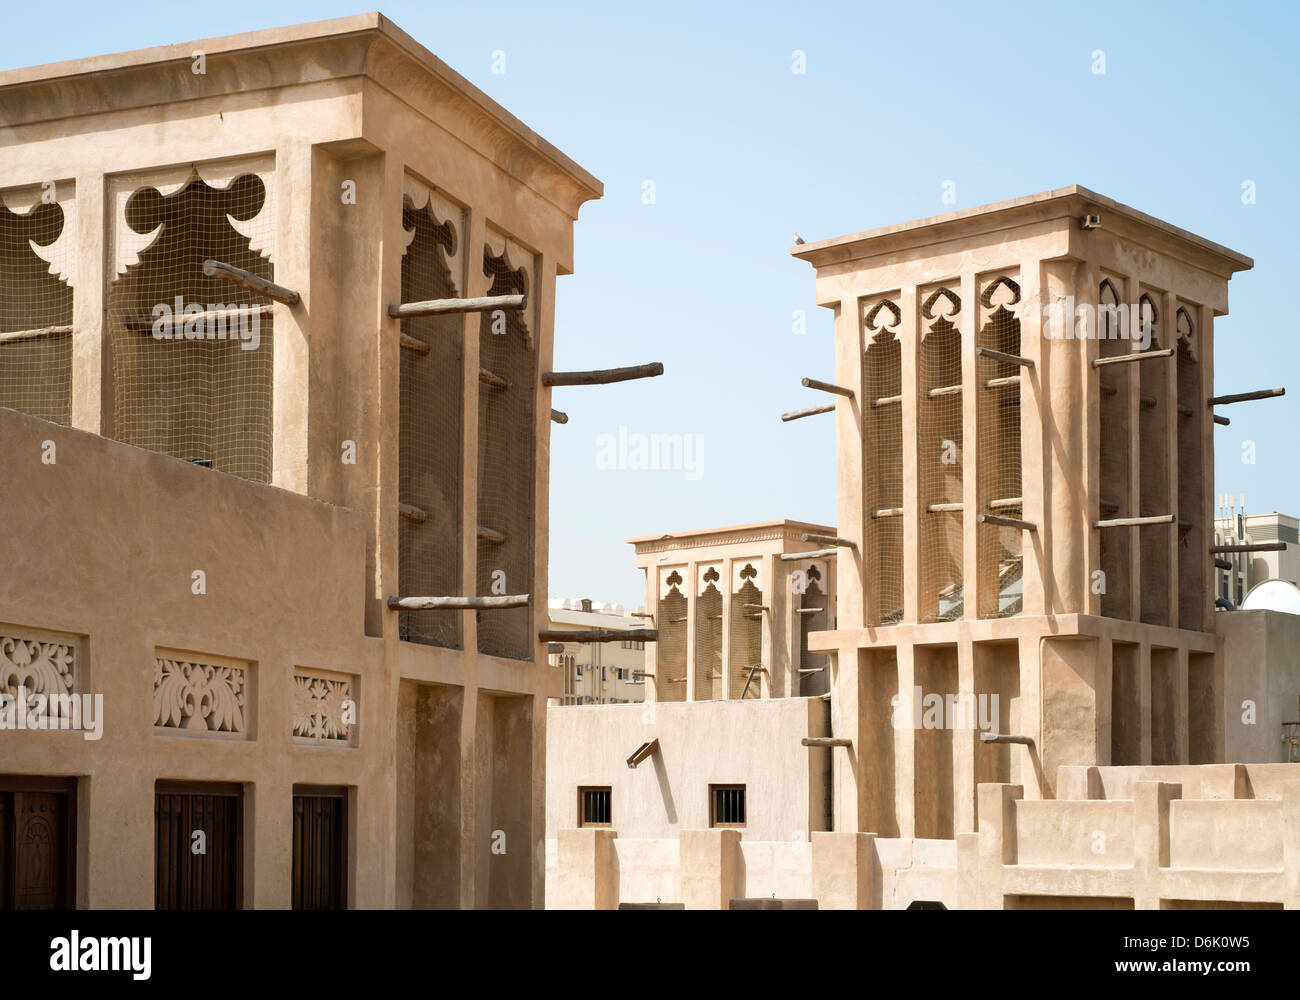 Traditional historical architecture with wind towers in al Wind architecture